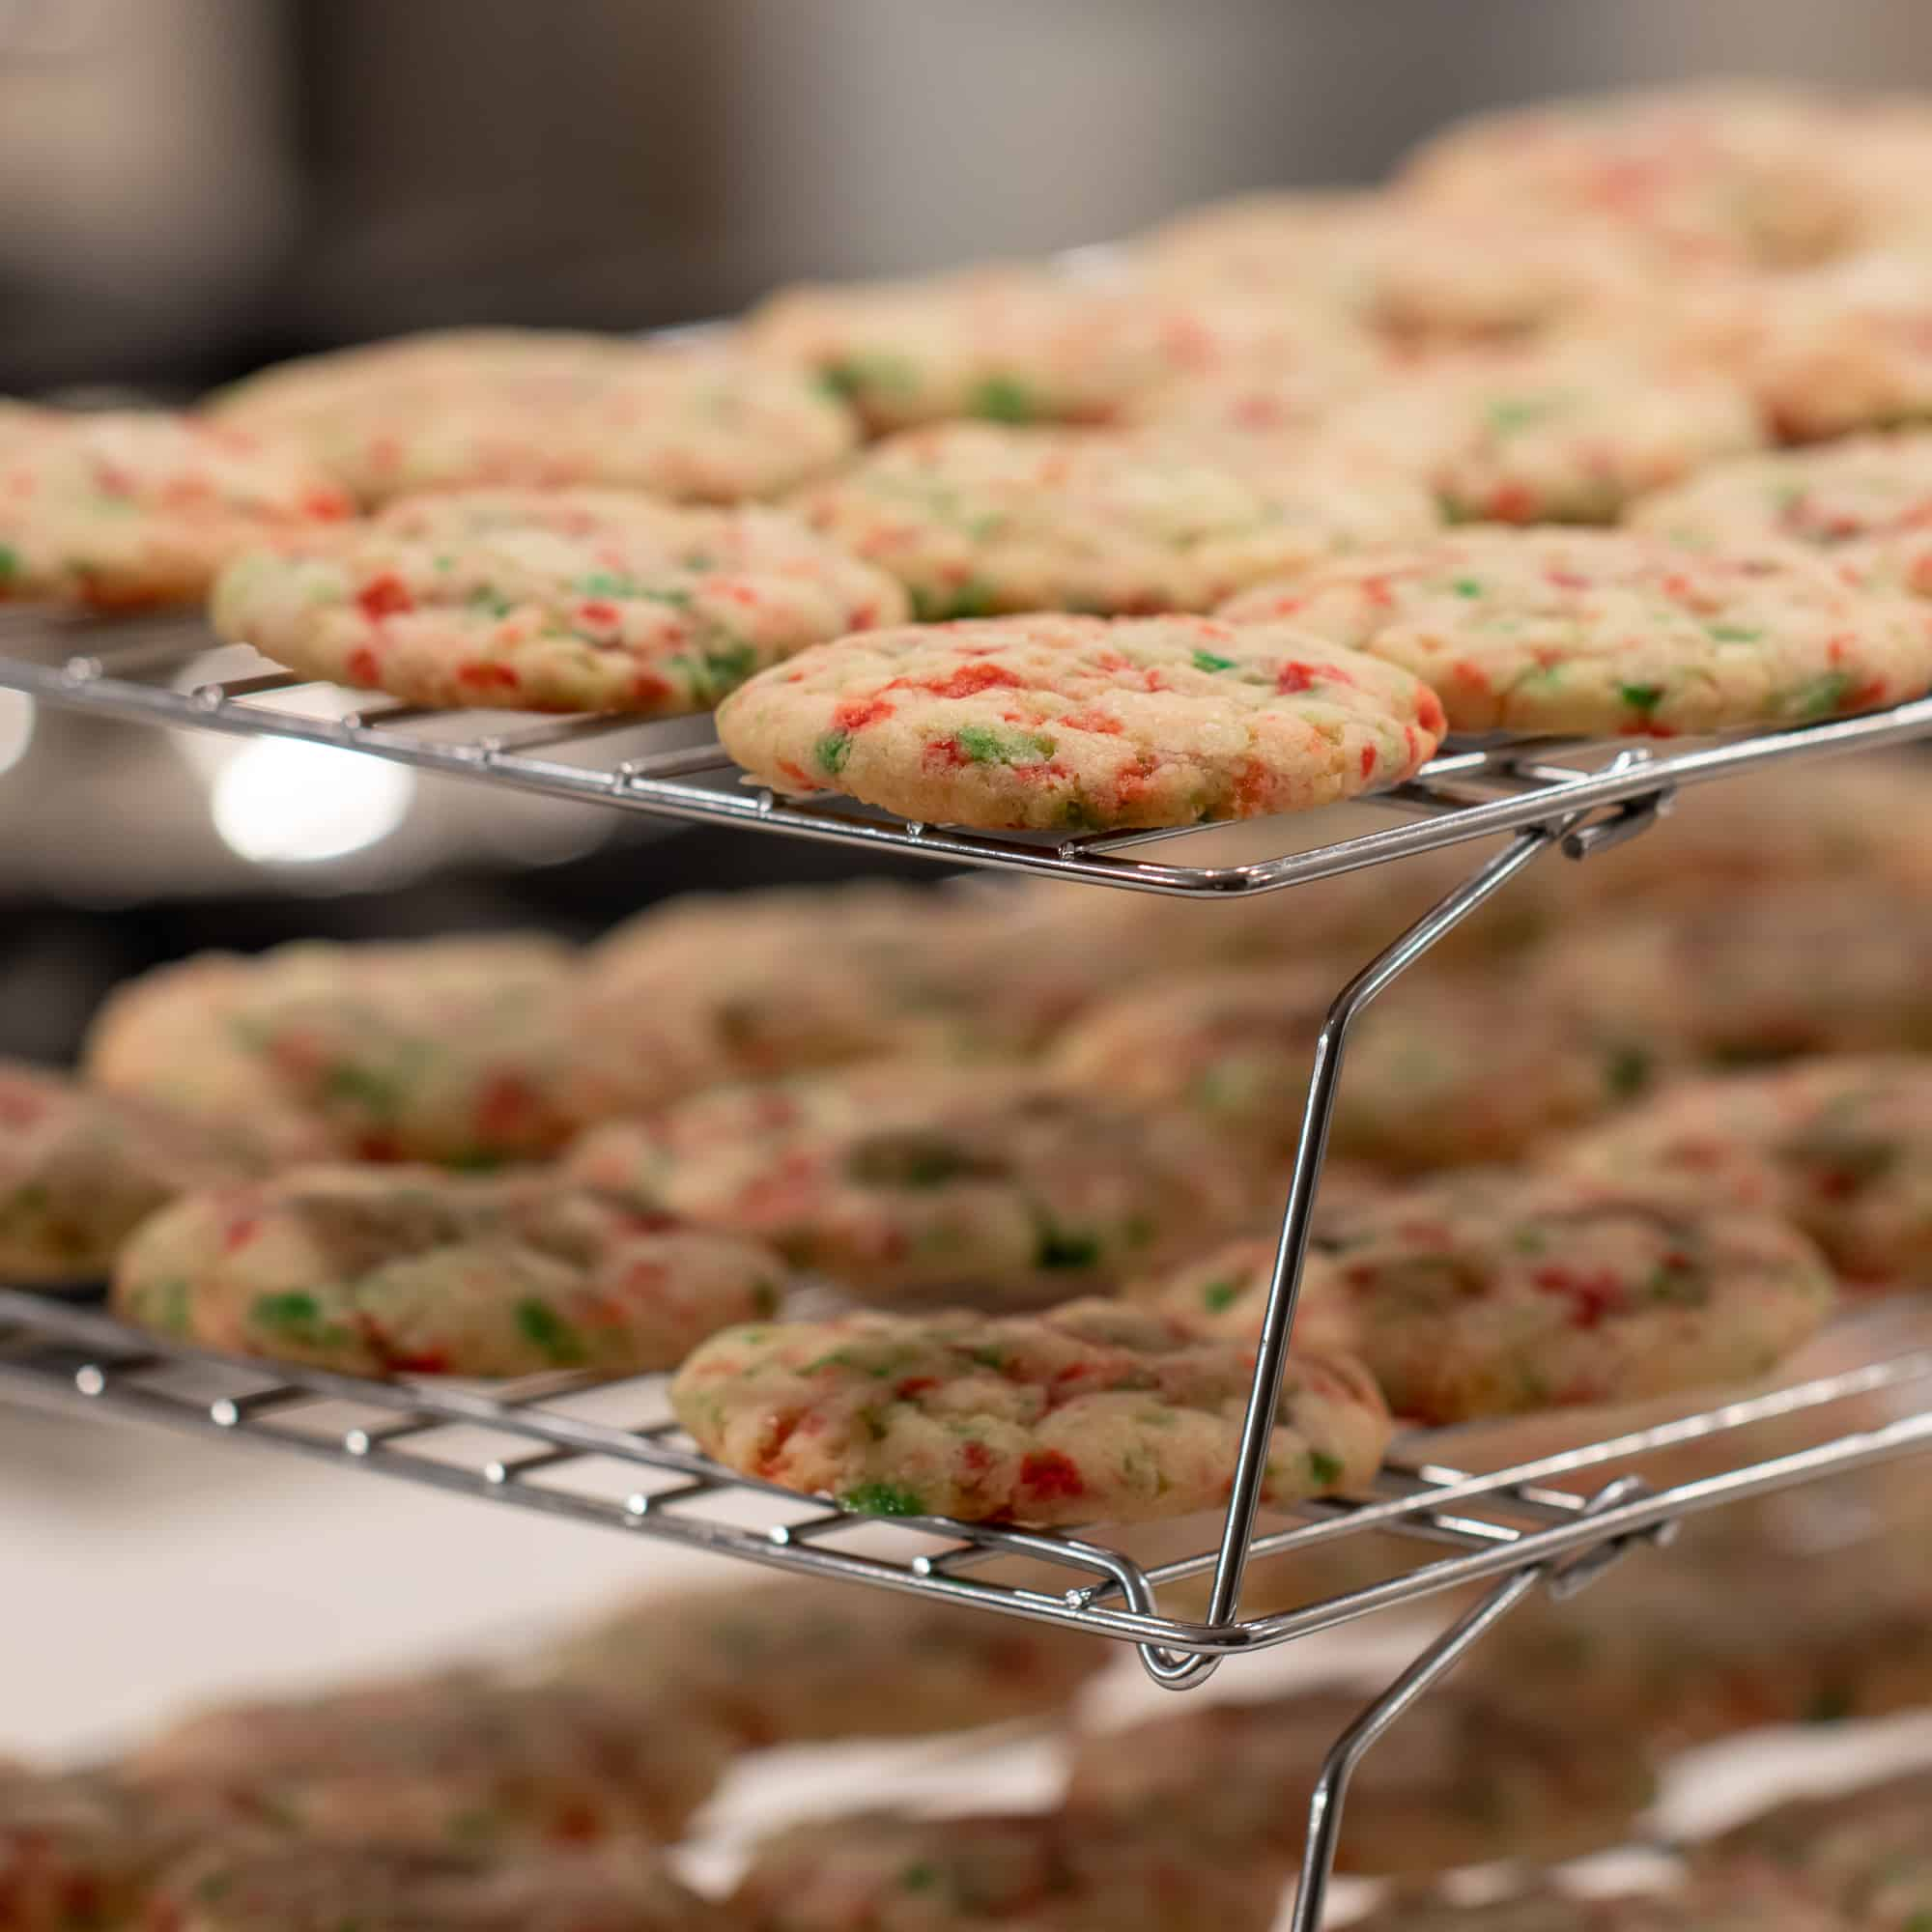 Delicious chewy cookies with the minty flavour of candy canes. Perfect cookie for the Christmas holiday season!